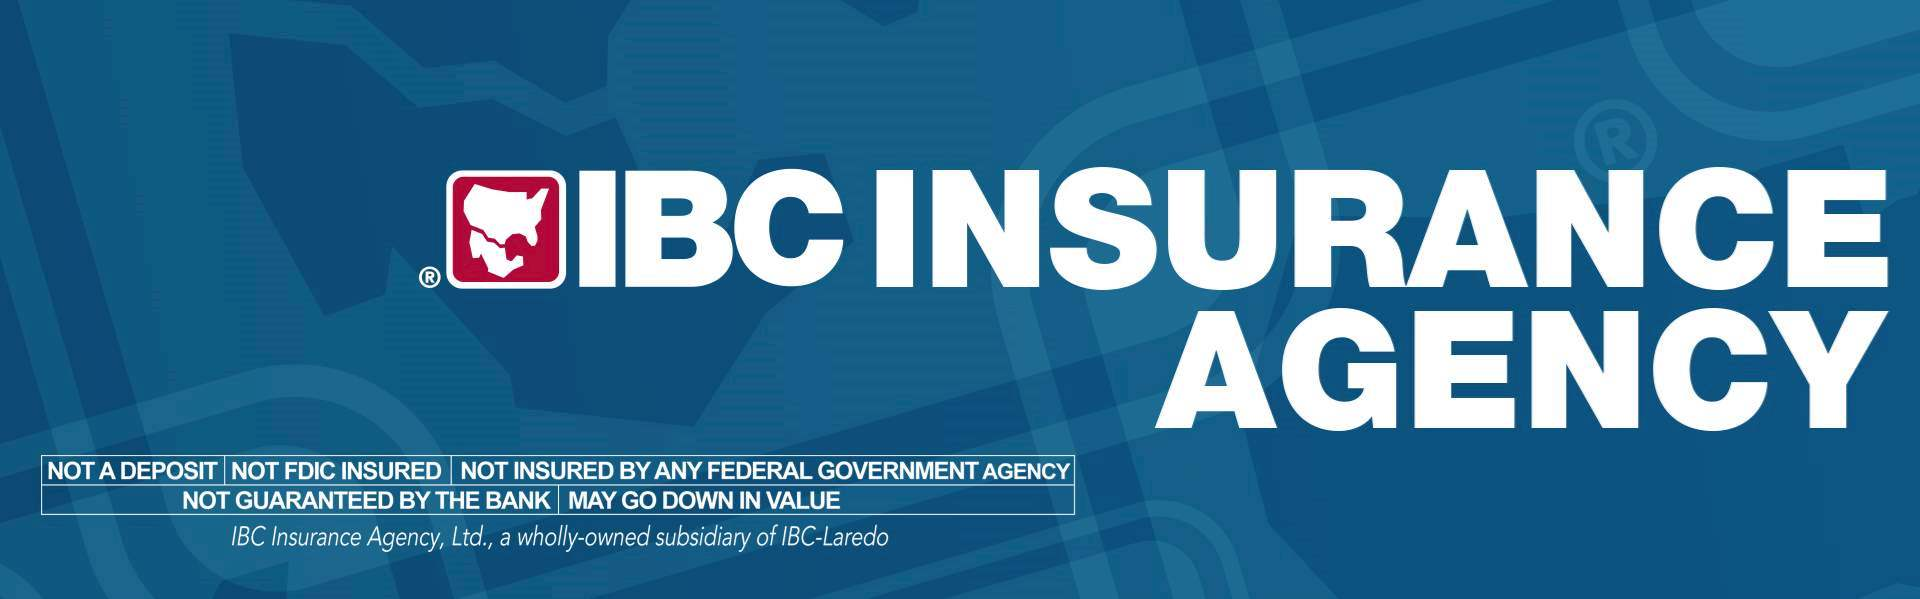 IBC Bank Business Insurance